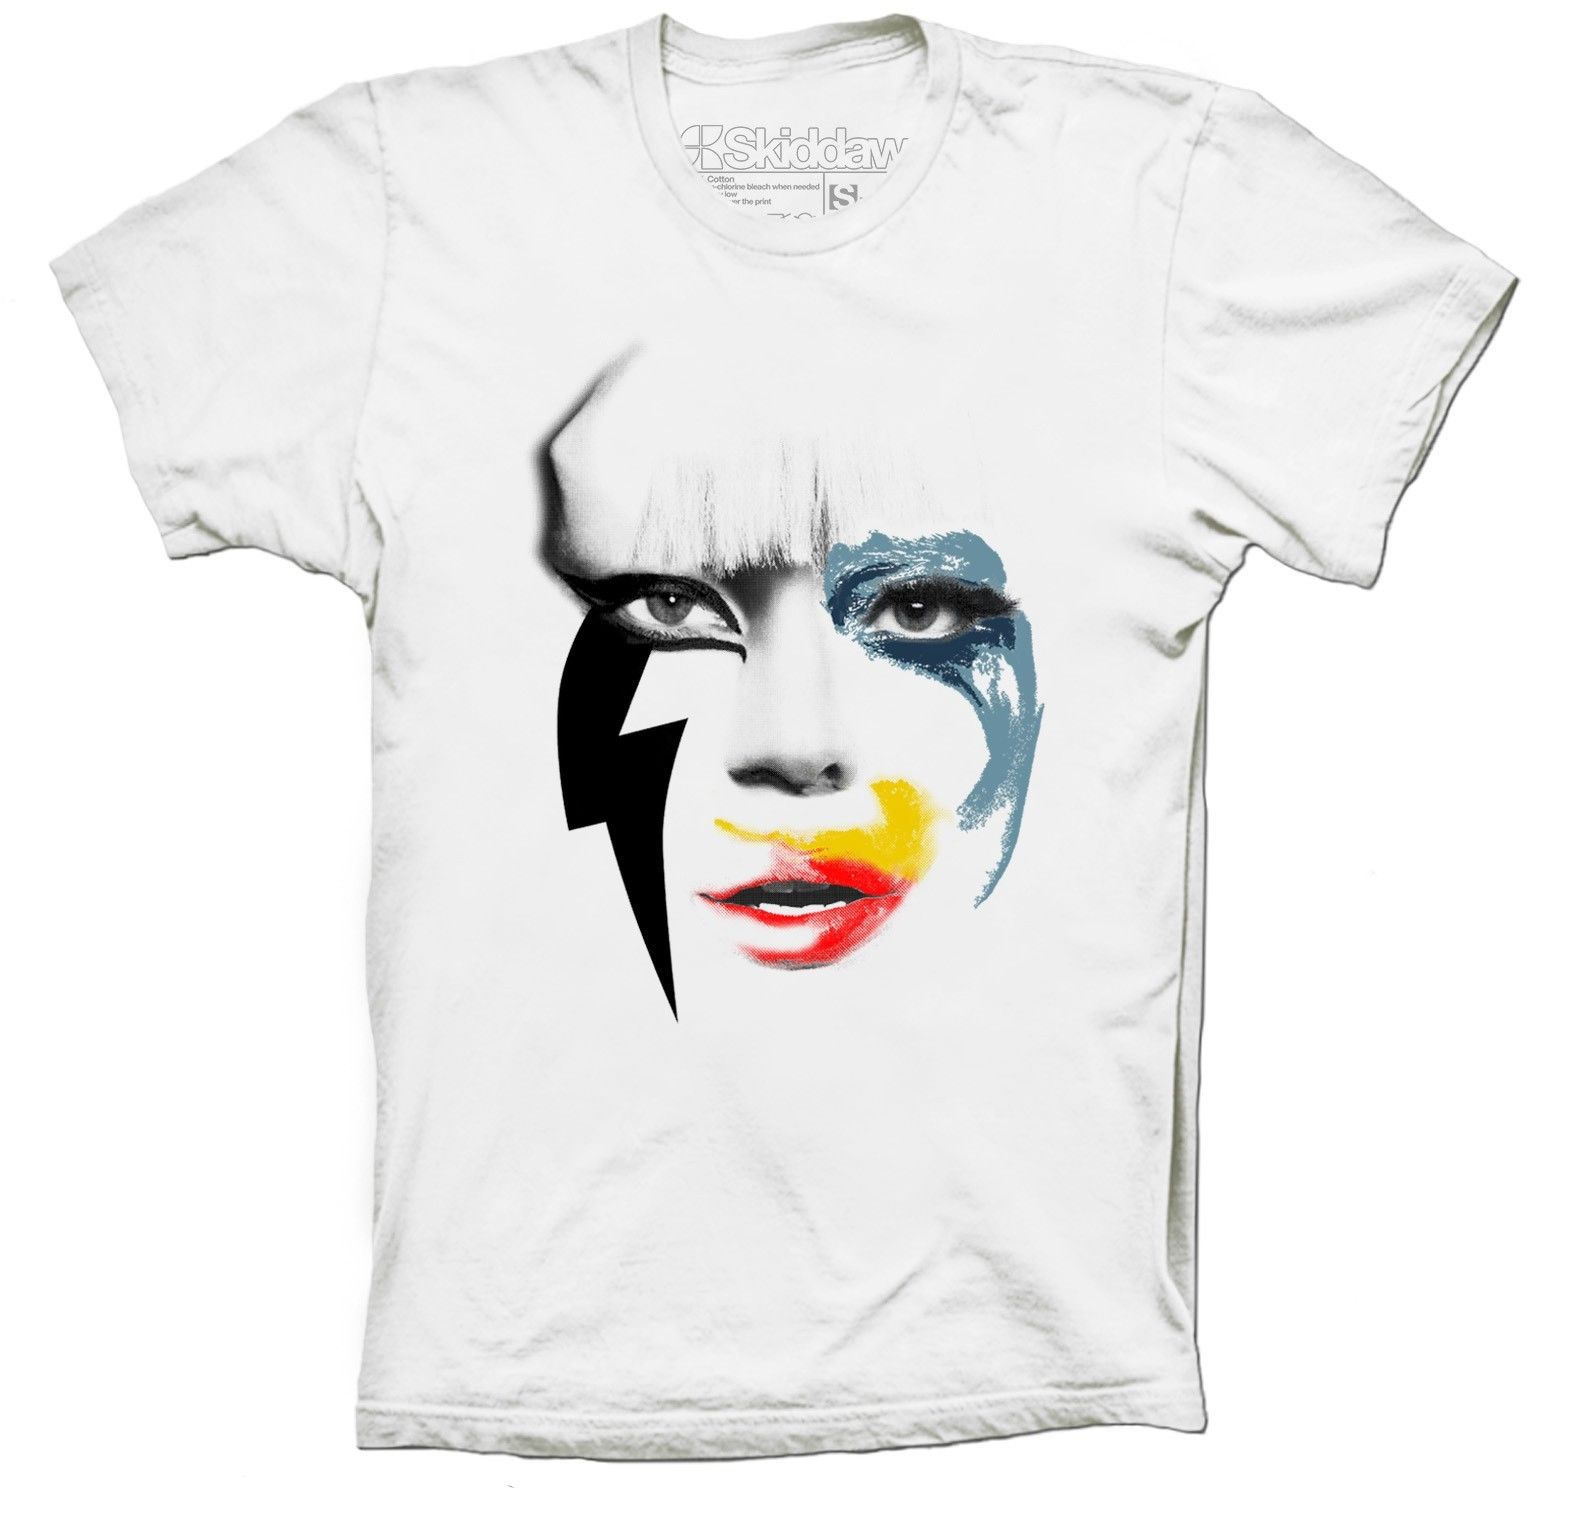 LADY GAGA T-SHIRT THE GAGA EVOLUTION INSPIRED ARTPOP APPLAUSE FAME MONSTER BORN